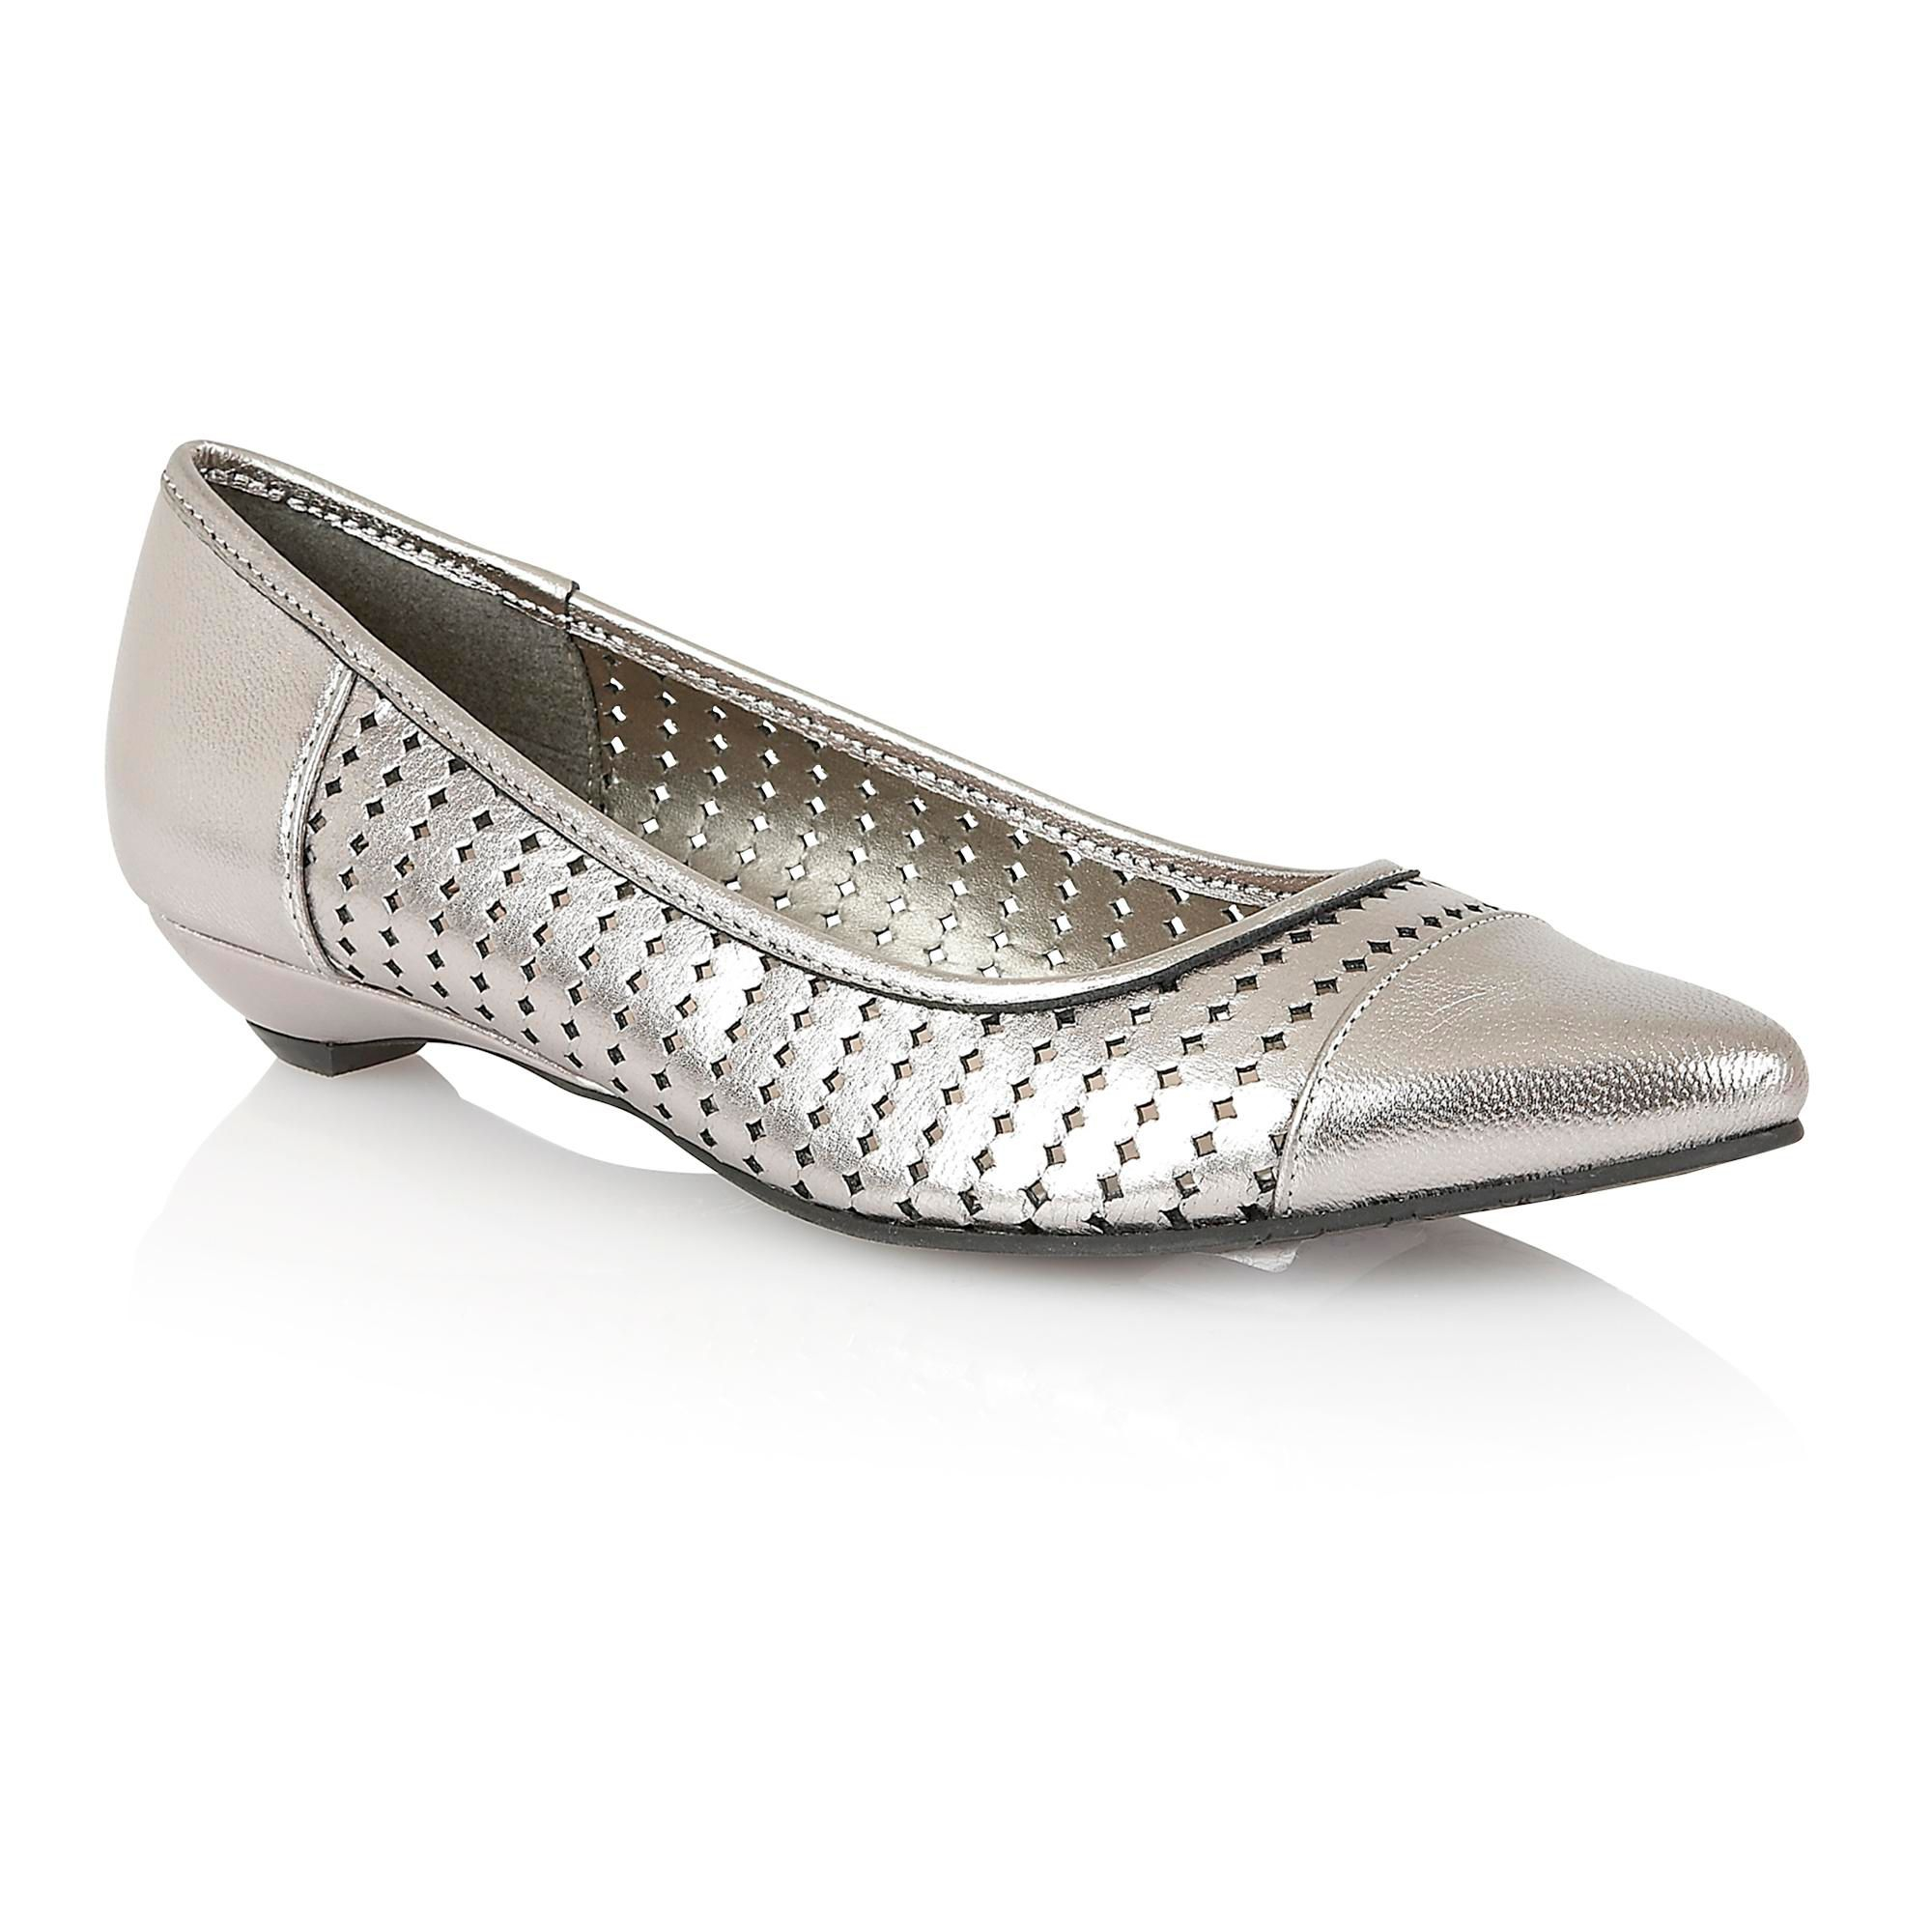 Lotus Diamond Flat Shoes in Silver (Pewter) - Save 50% | Lyst